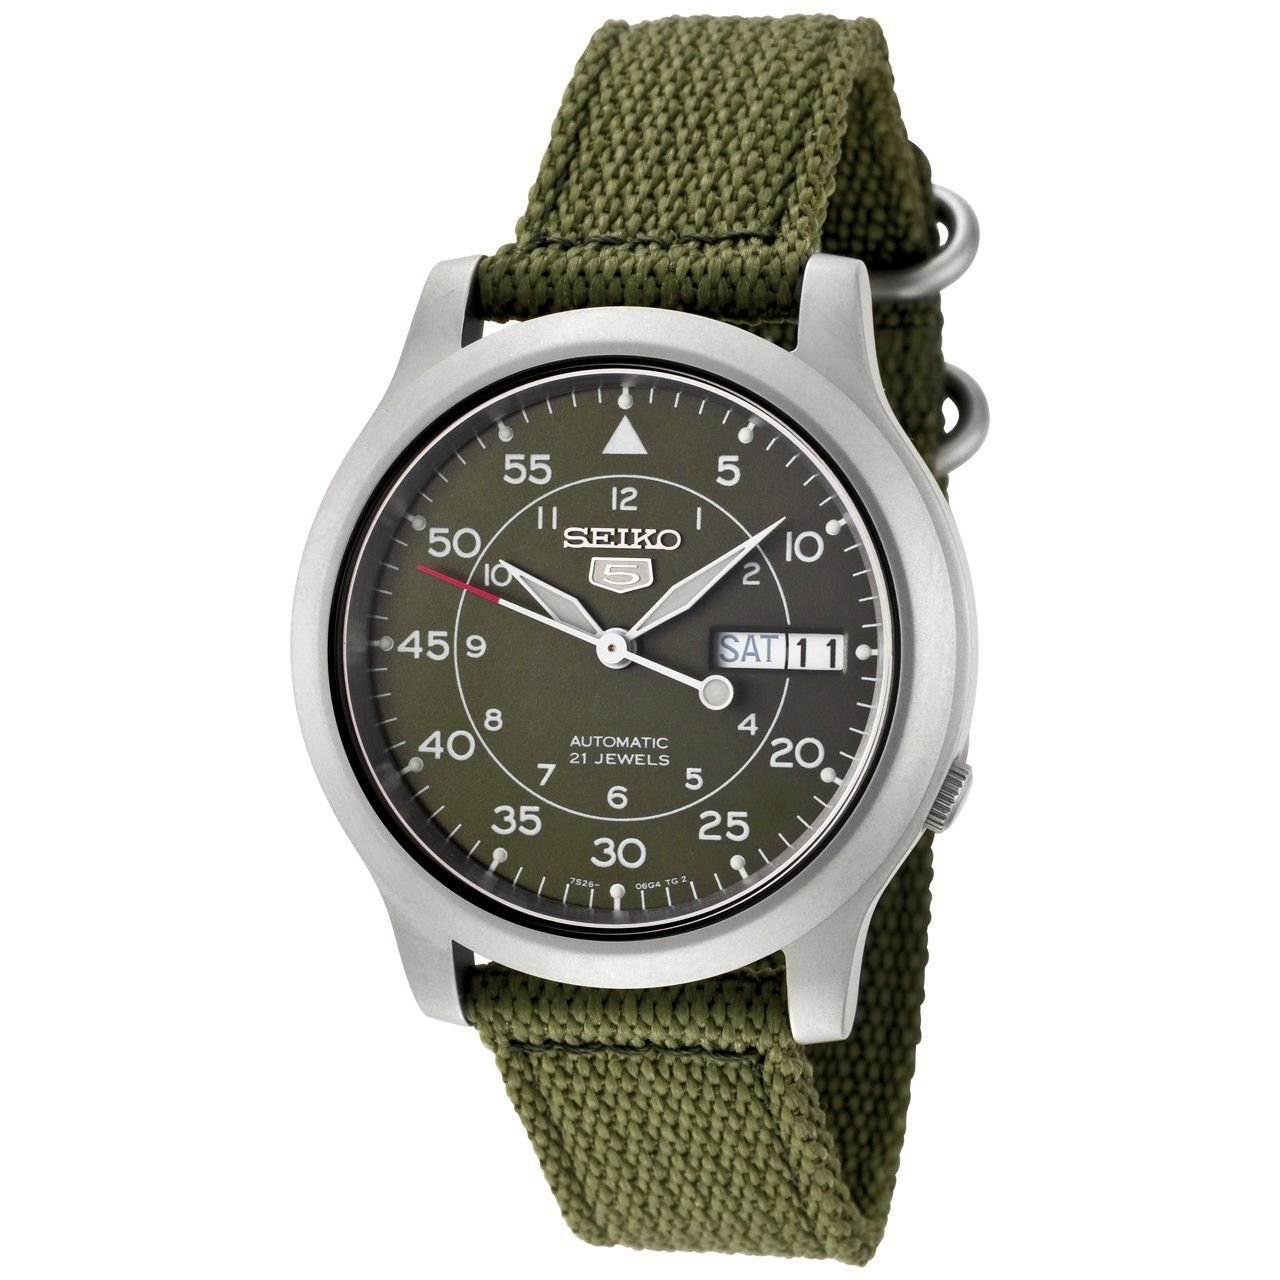 Seiko Men's SNK805 Seiko 5 Automatic Green Canvas Strap Watch $55.01